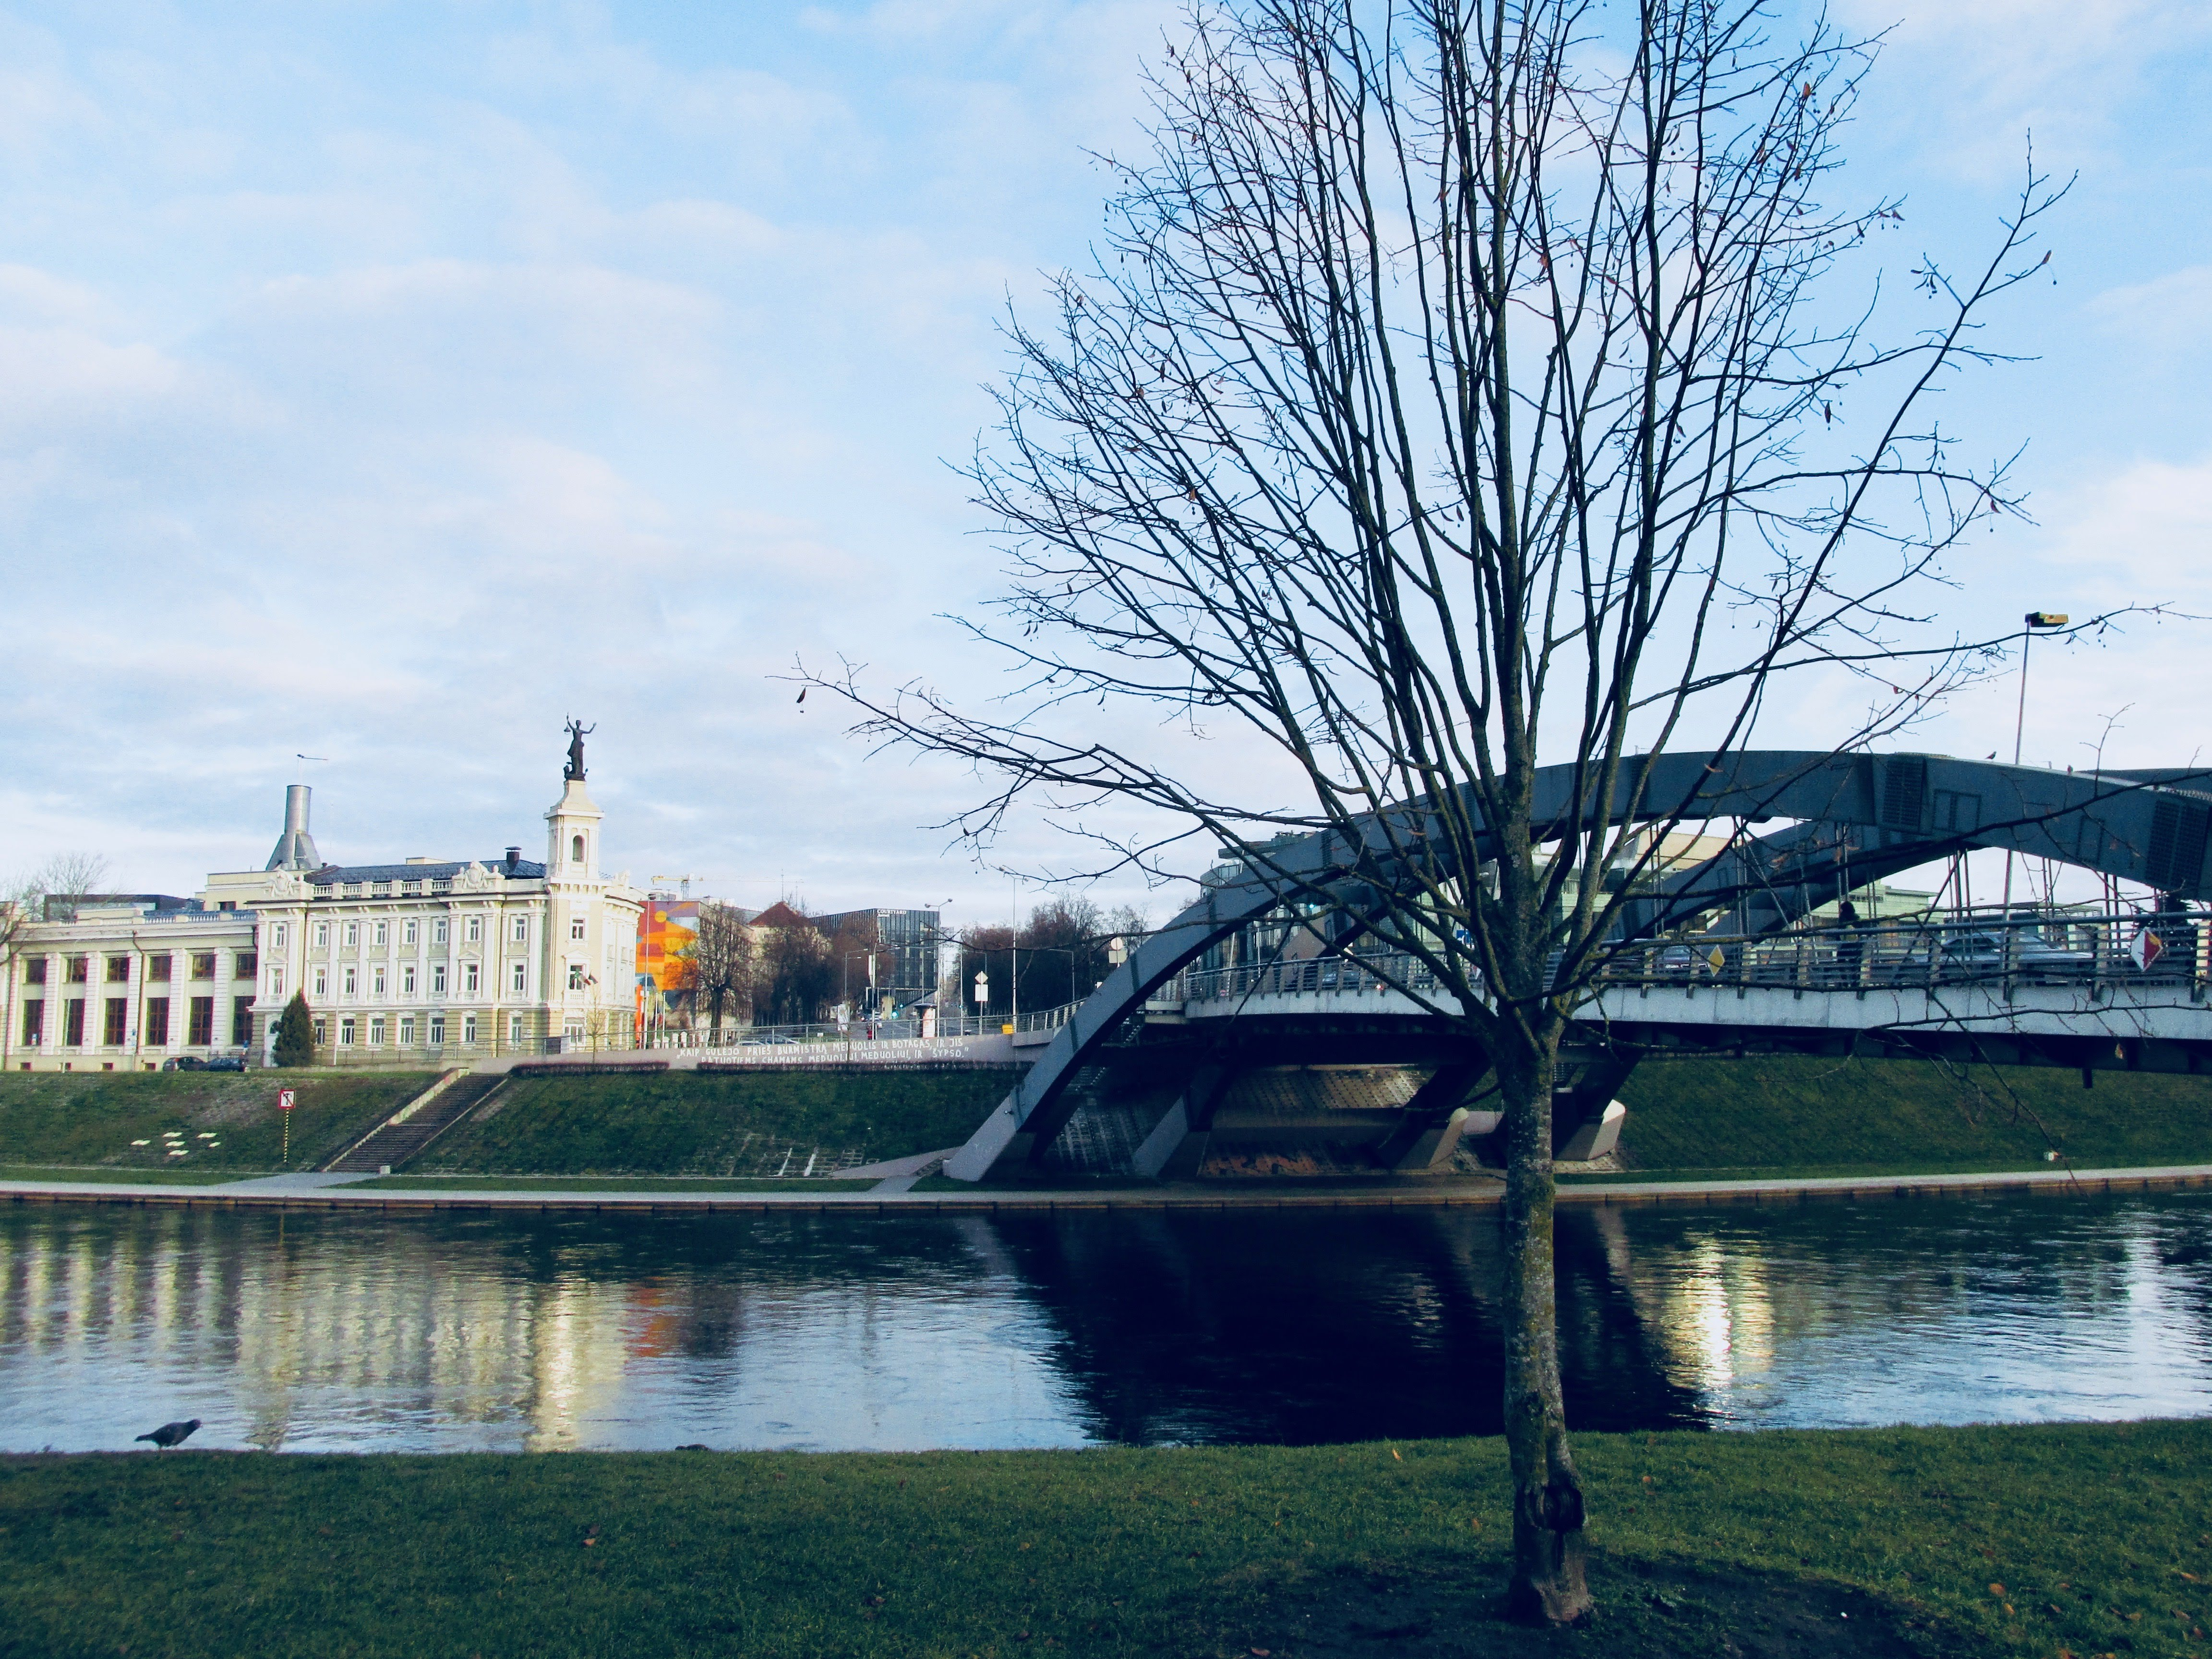 The Mindaugas Bridge. It crosses Neris River and connects Žirmūnai neighborhood with the Old Town of Vilnius